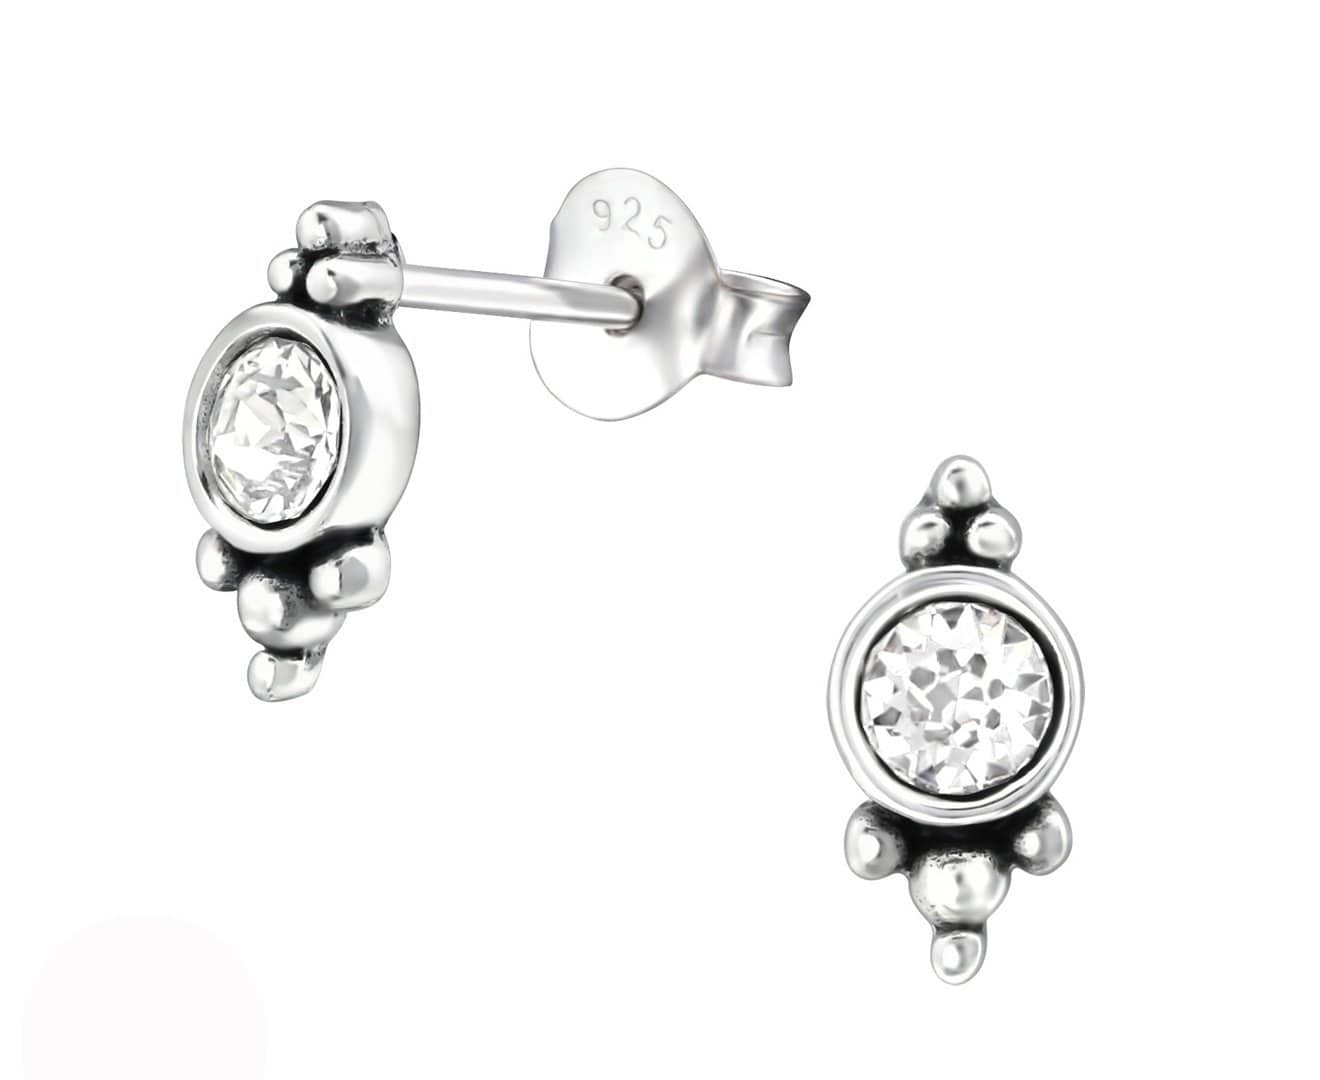 Sterling Silver Oxidized Stud Earrings Made With Swarovski Crystal